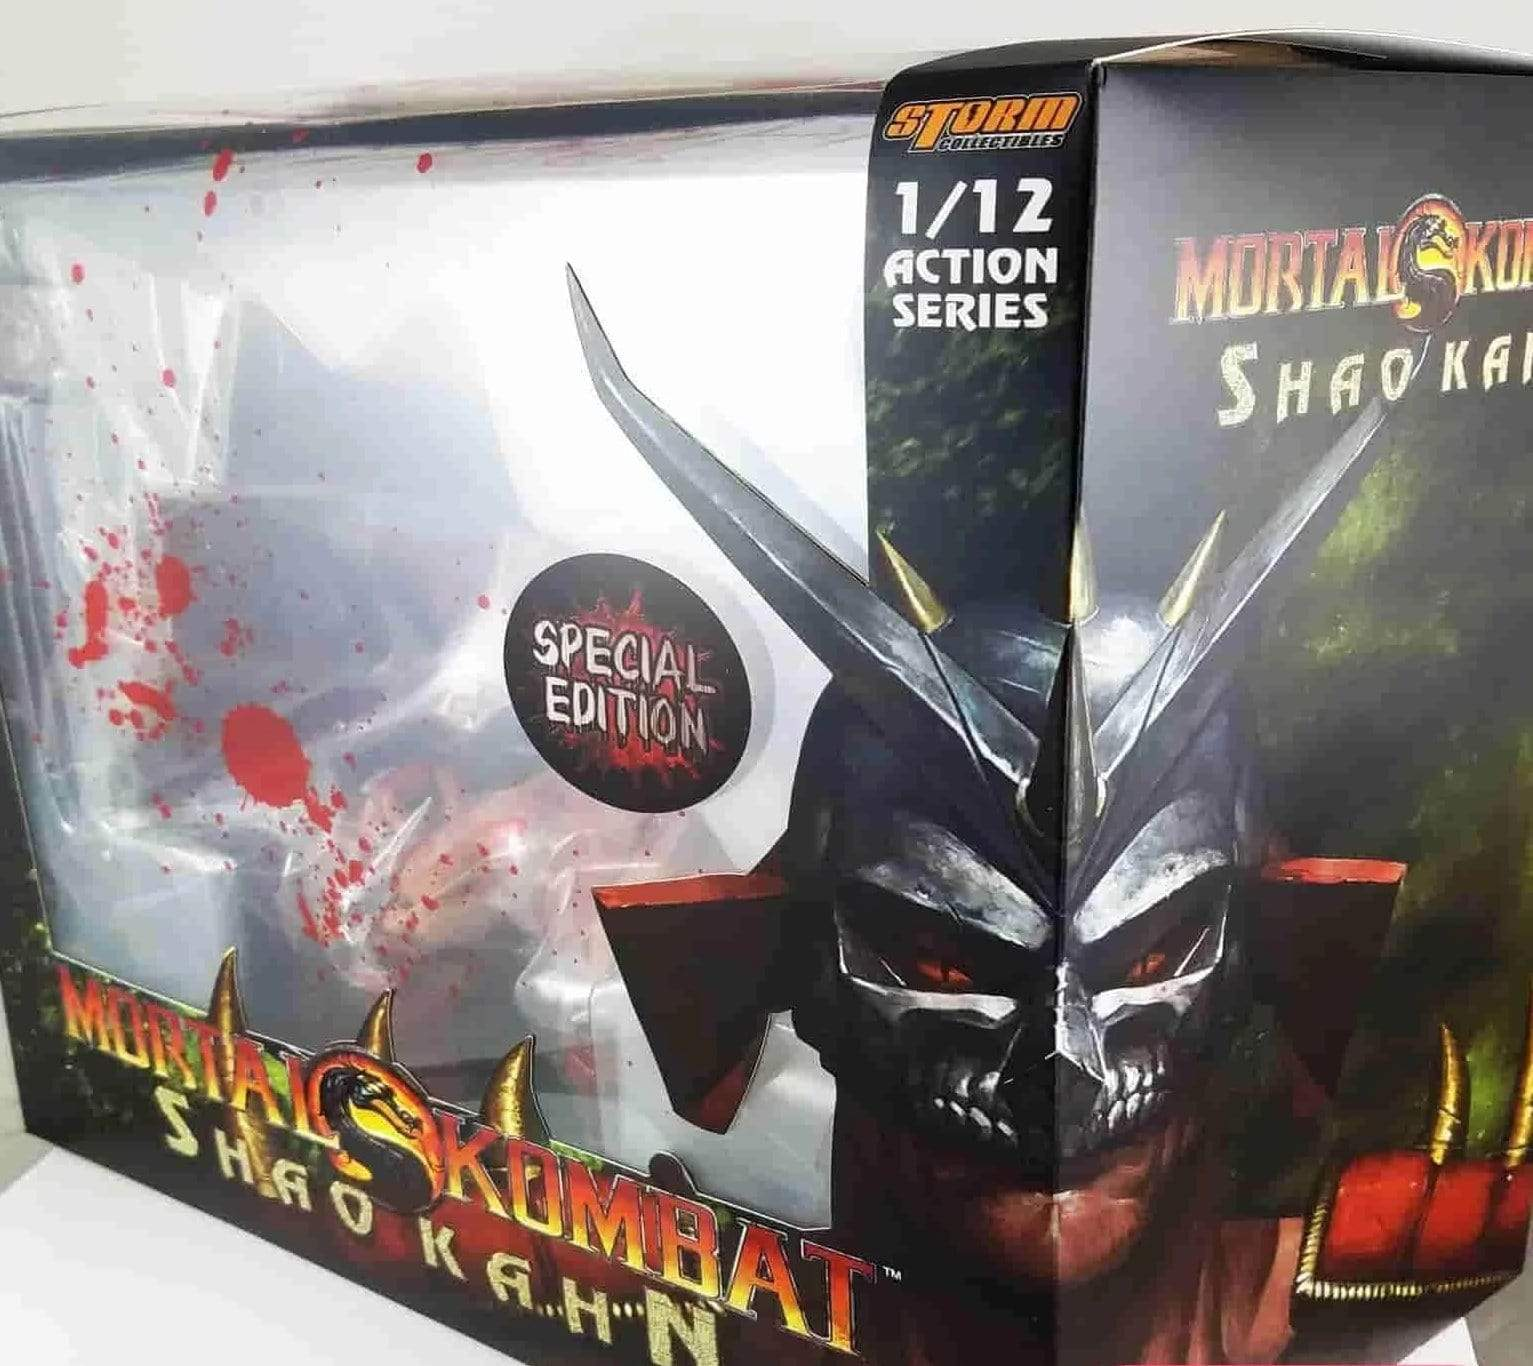 Shao Kahn (Special Edition) Mortal Kombat 1:12 Action Figure by Storm Collectibles - IamRetro.com